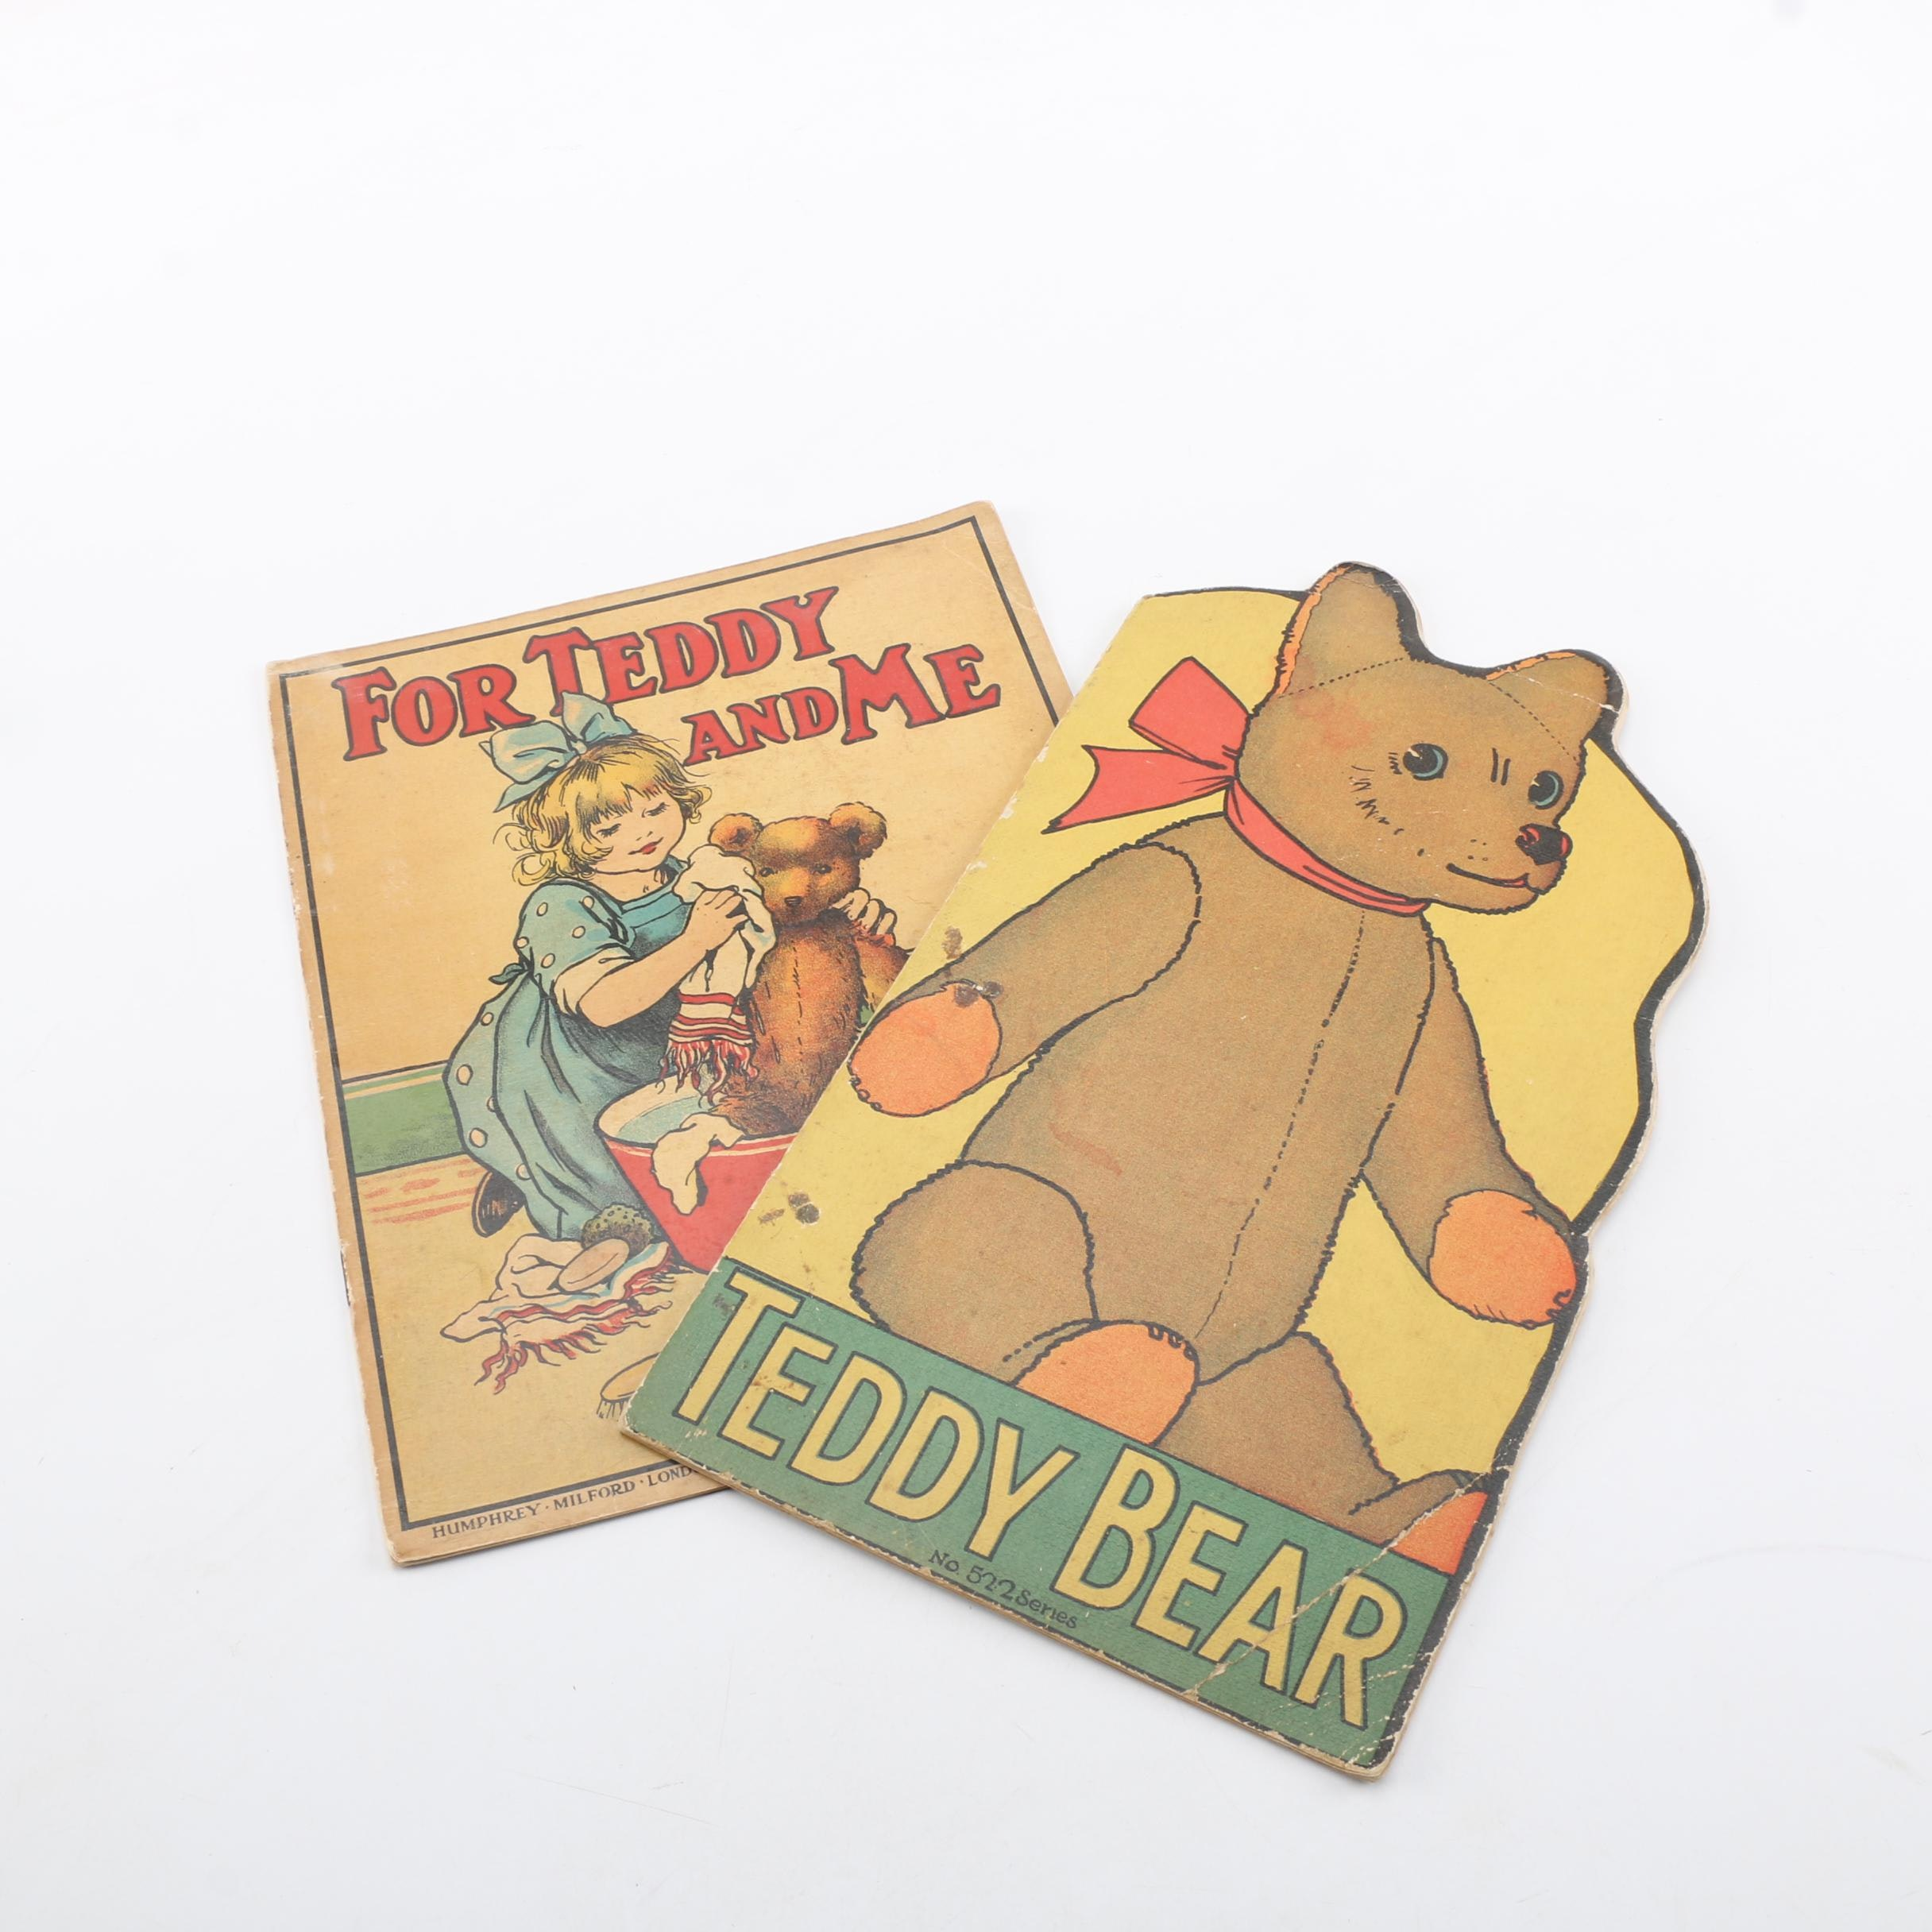 1922 Picture Book with Vintage Children's Book.